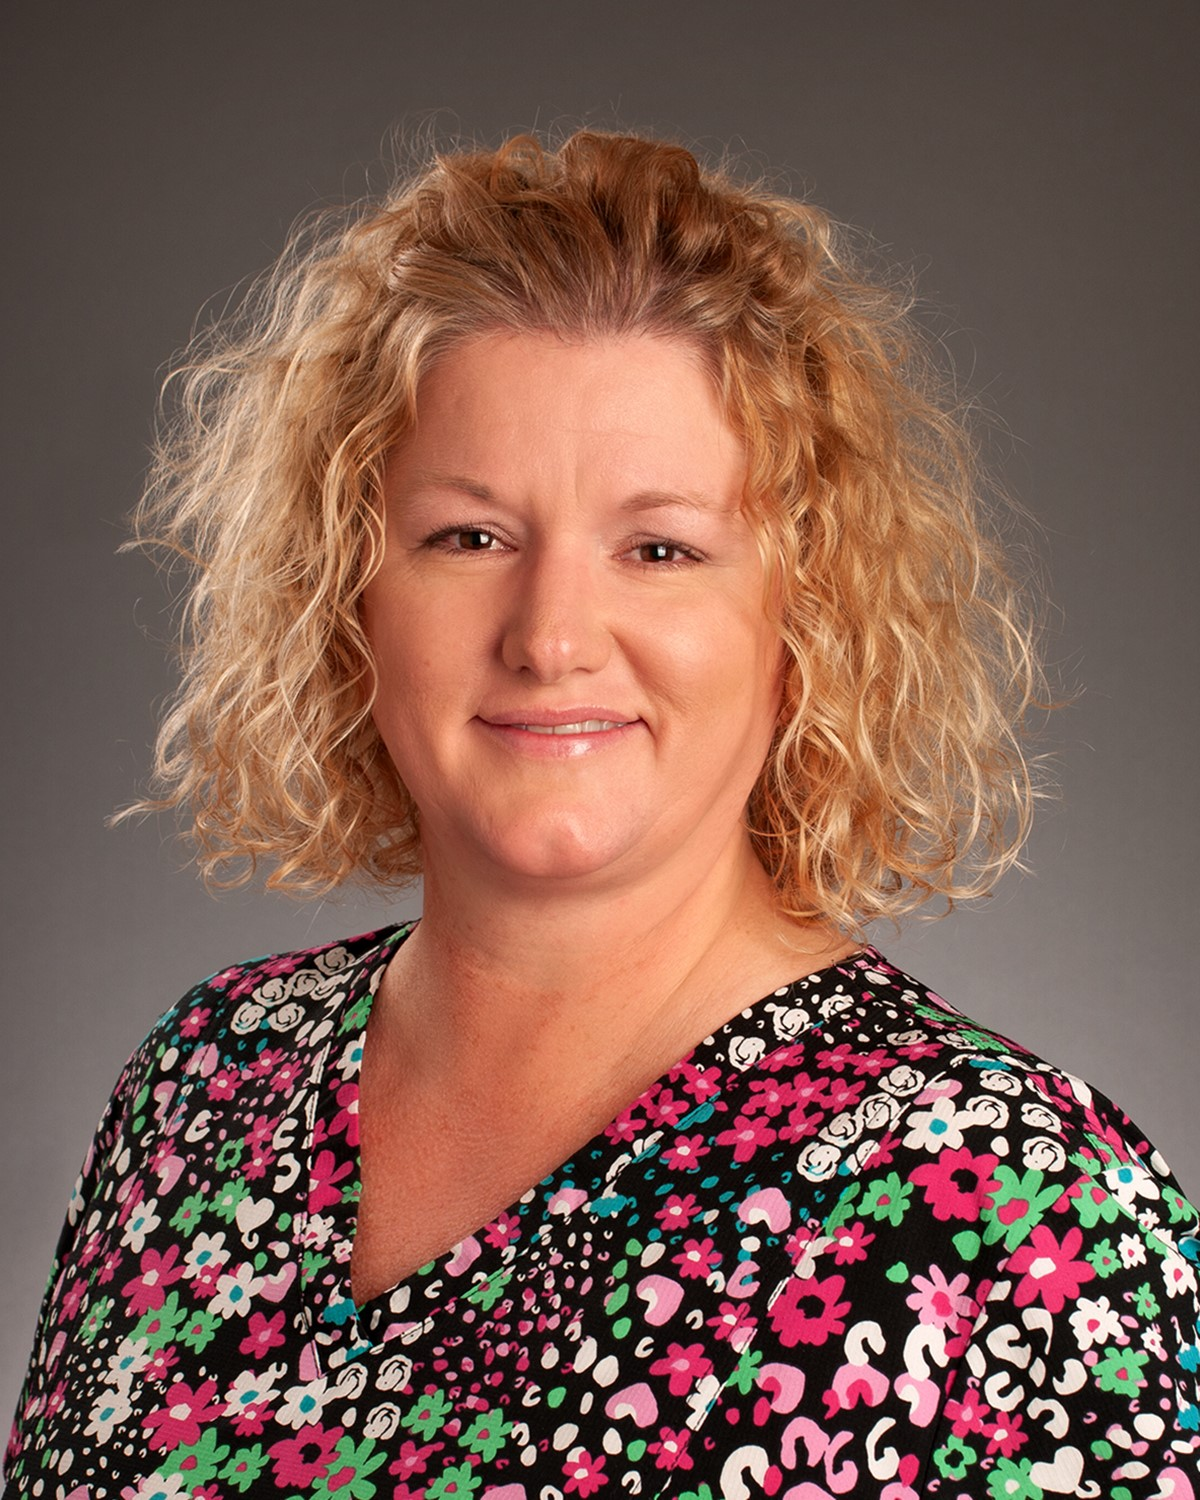 Tracy Tew, Health Services, faculty/staff, studio portrait by Priscilla Grover